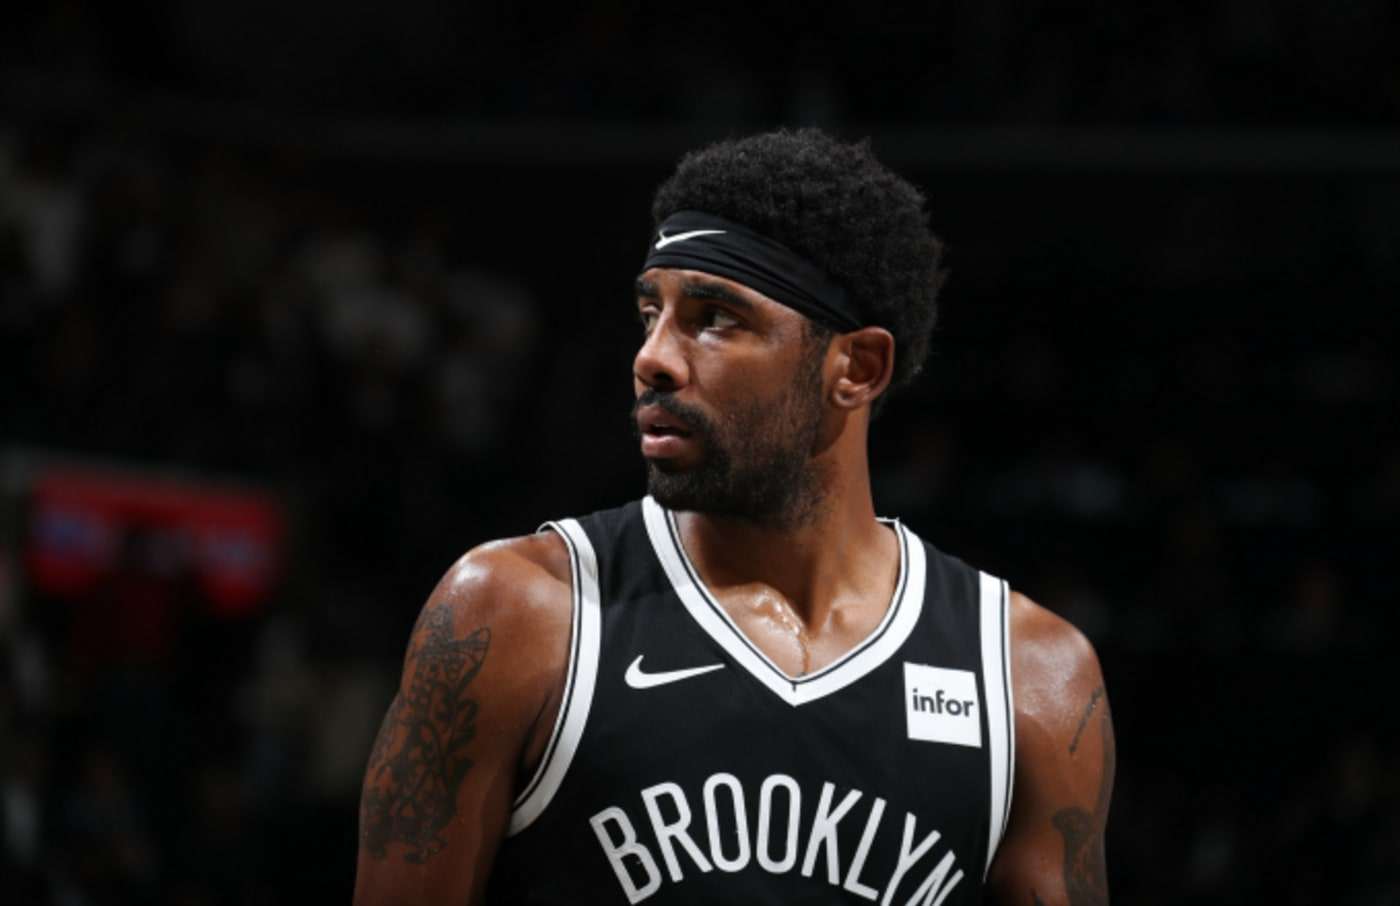 Kyrie Irving #11 of the Brooklyn Nets looks on against the New York Knicks